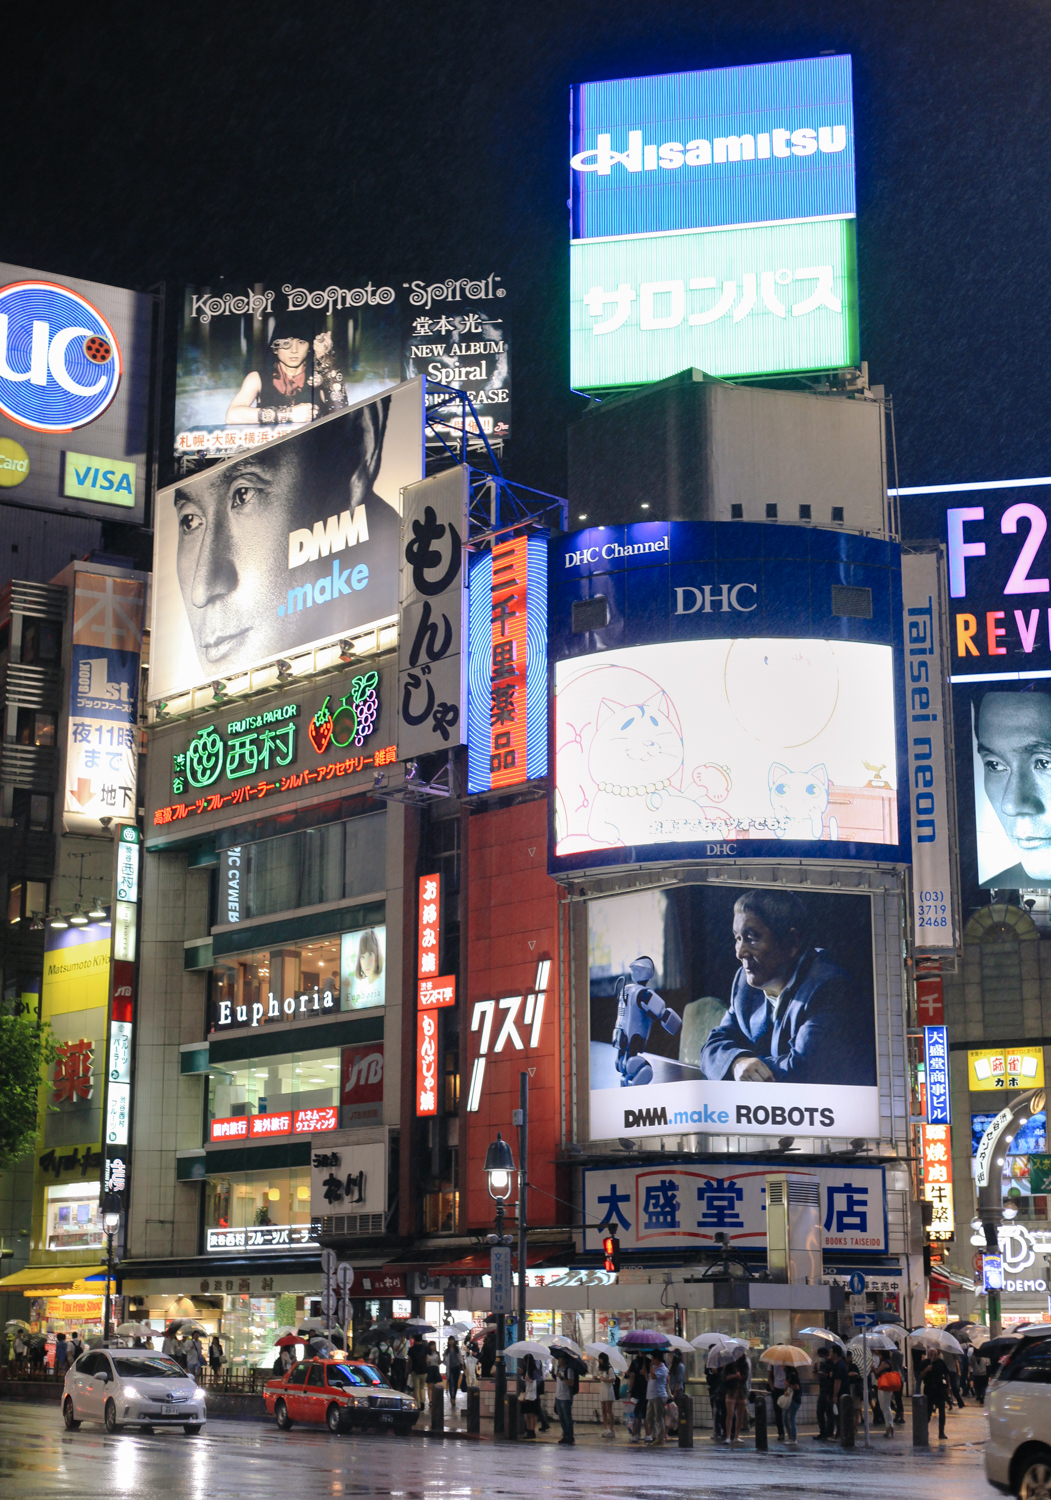 At the renowned busy intersection in Shibuya district. It's...uh... busy?